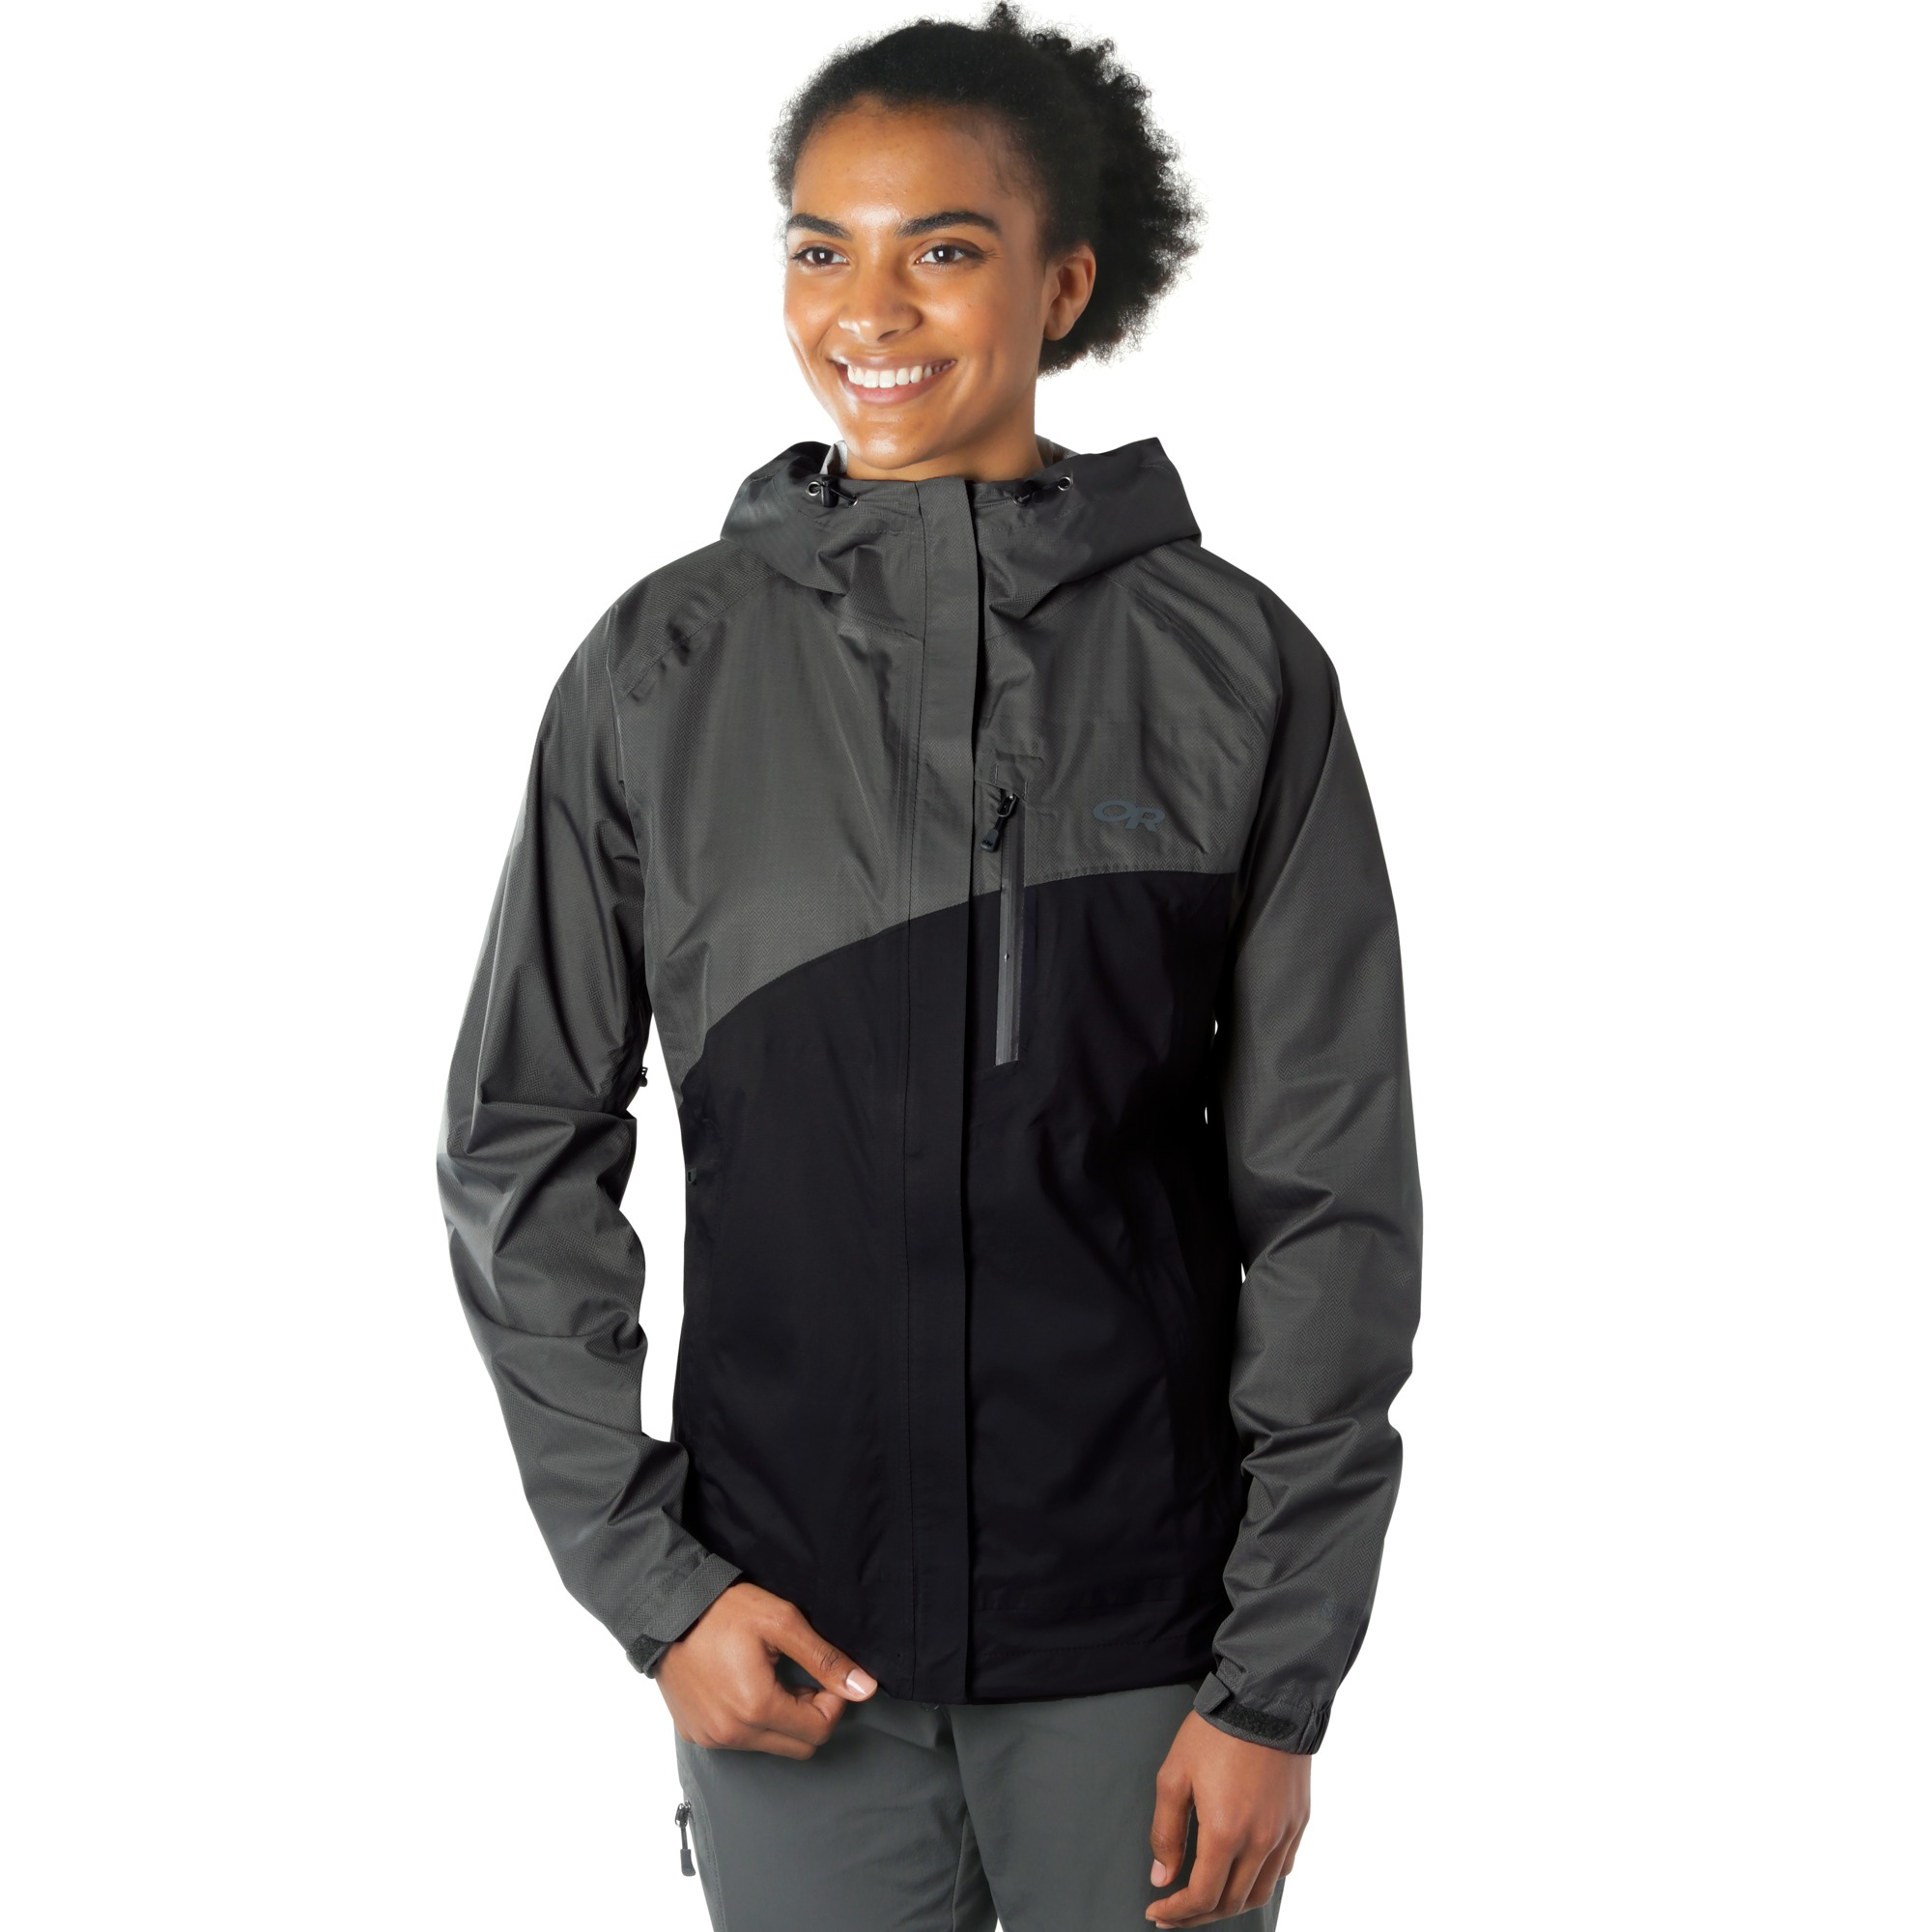 factory outlets 100% top quality look for Women's Panorama Point Jacket - washed peacock hrngbn ...